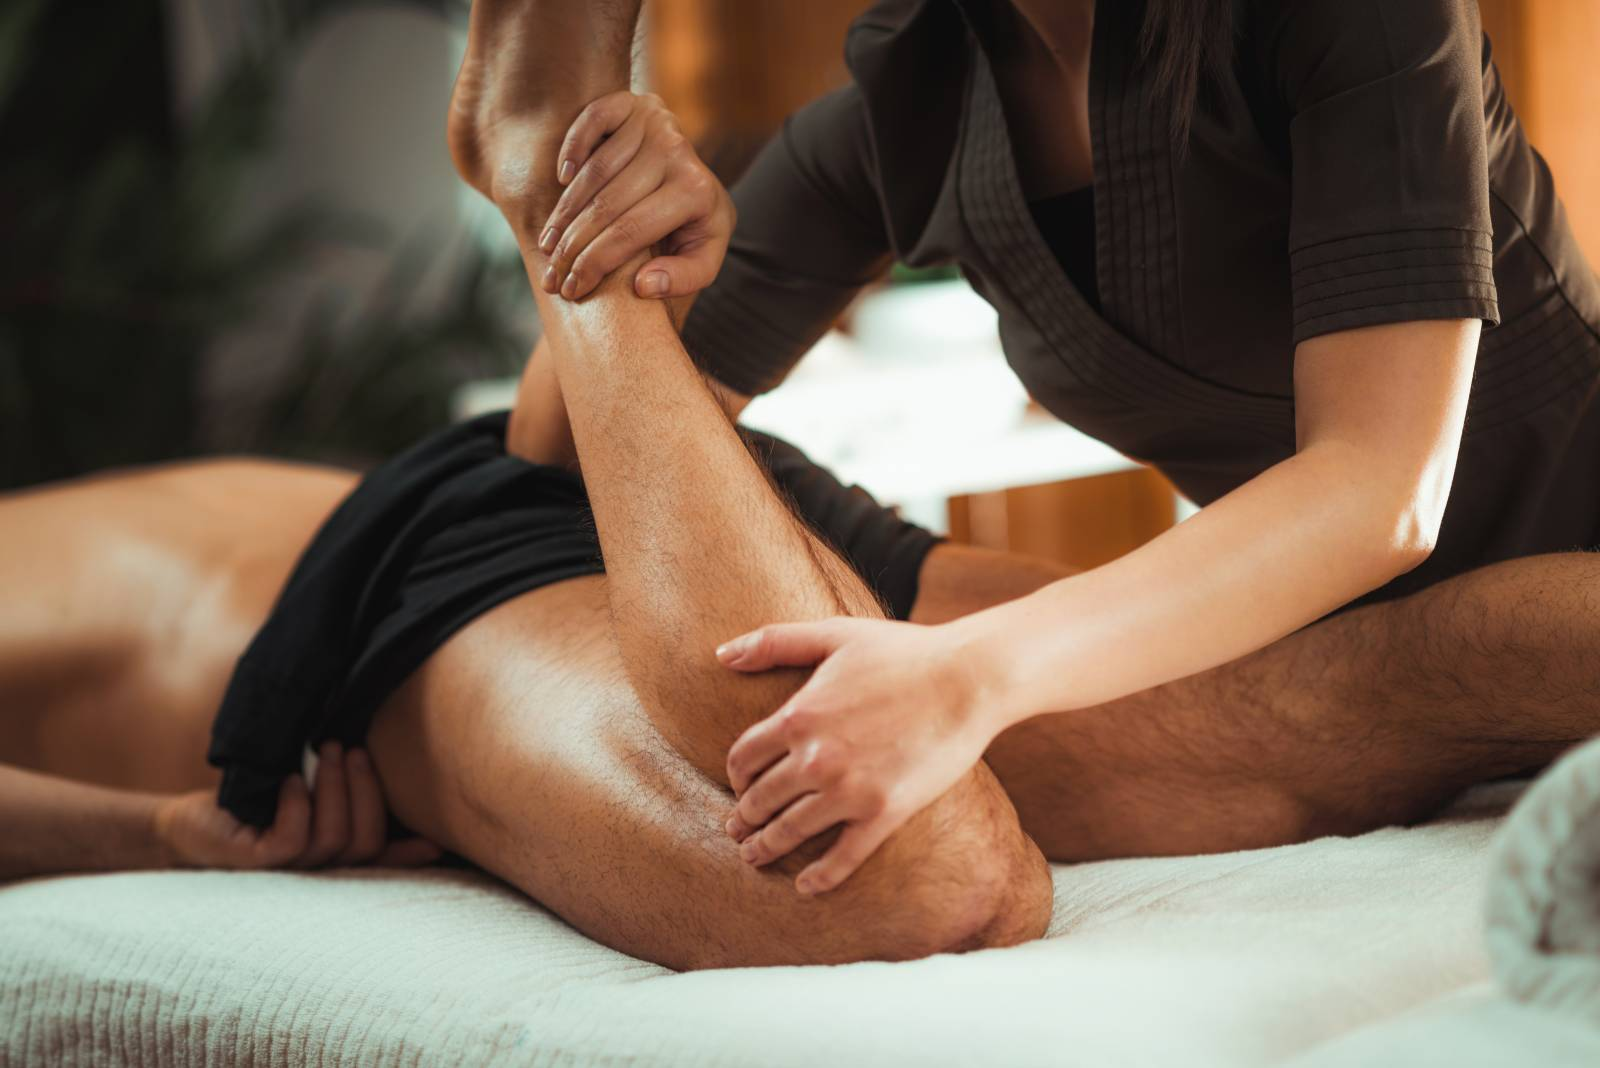 Physiotherapist massaging male patient with injured leg muscle. Sports injury treatment.